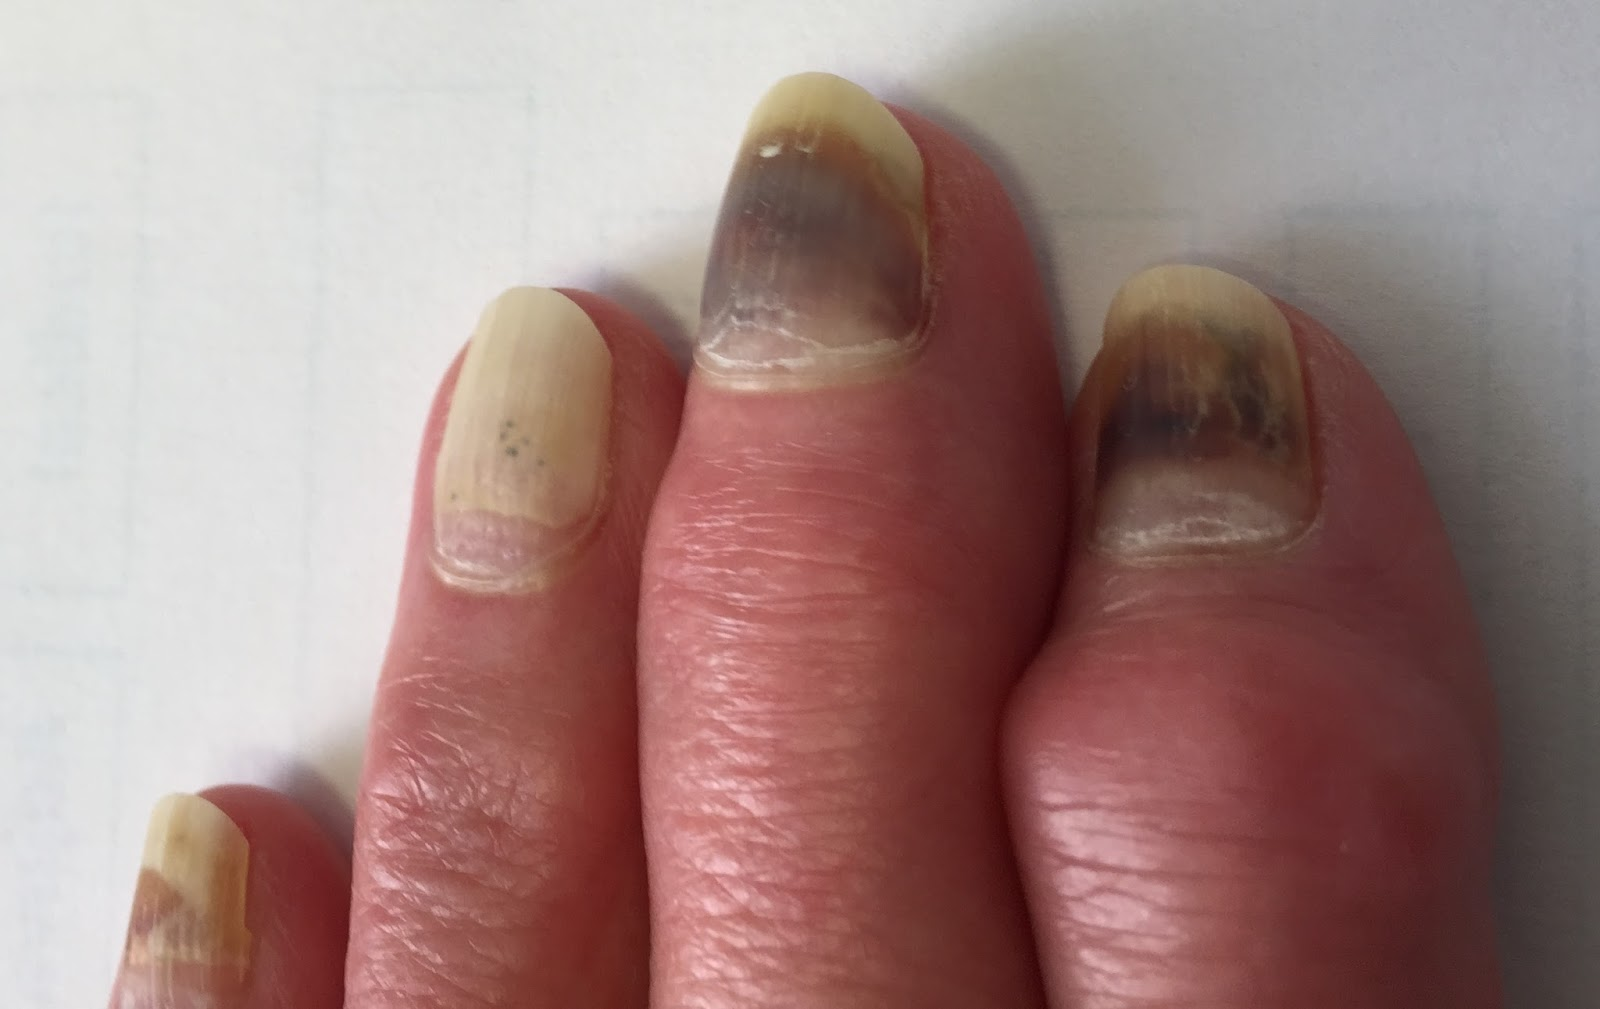 chemotherapy and nail toxicity Rationale: cryotherapy may help prevent peripheral neuropathy or nail toxicity in patients receiving chemotherapy purpose: this clinical trial studies.